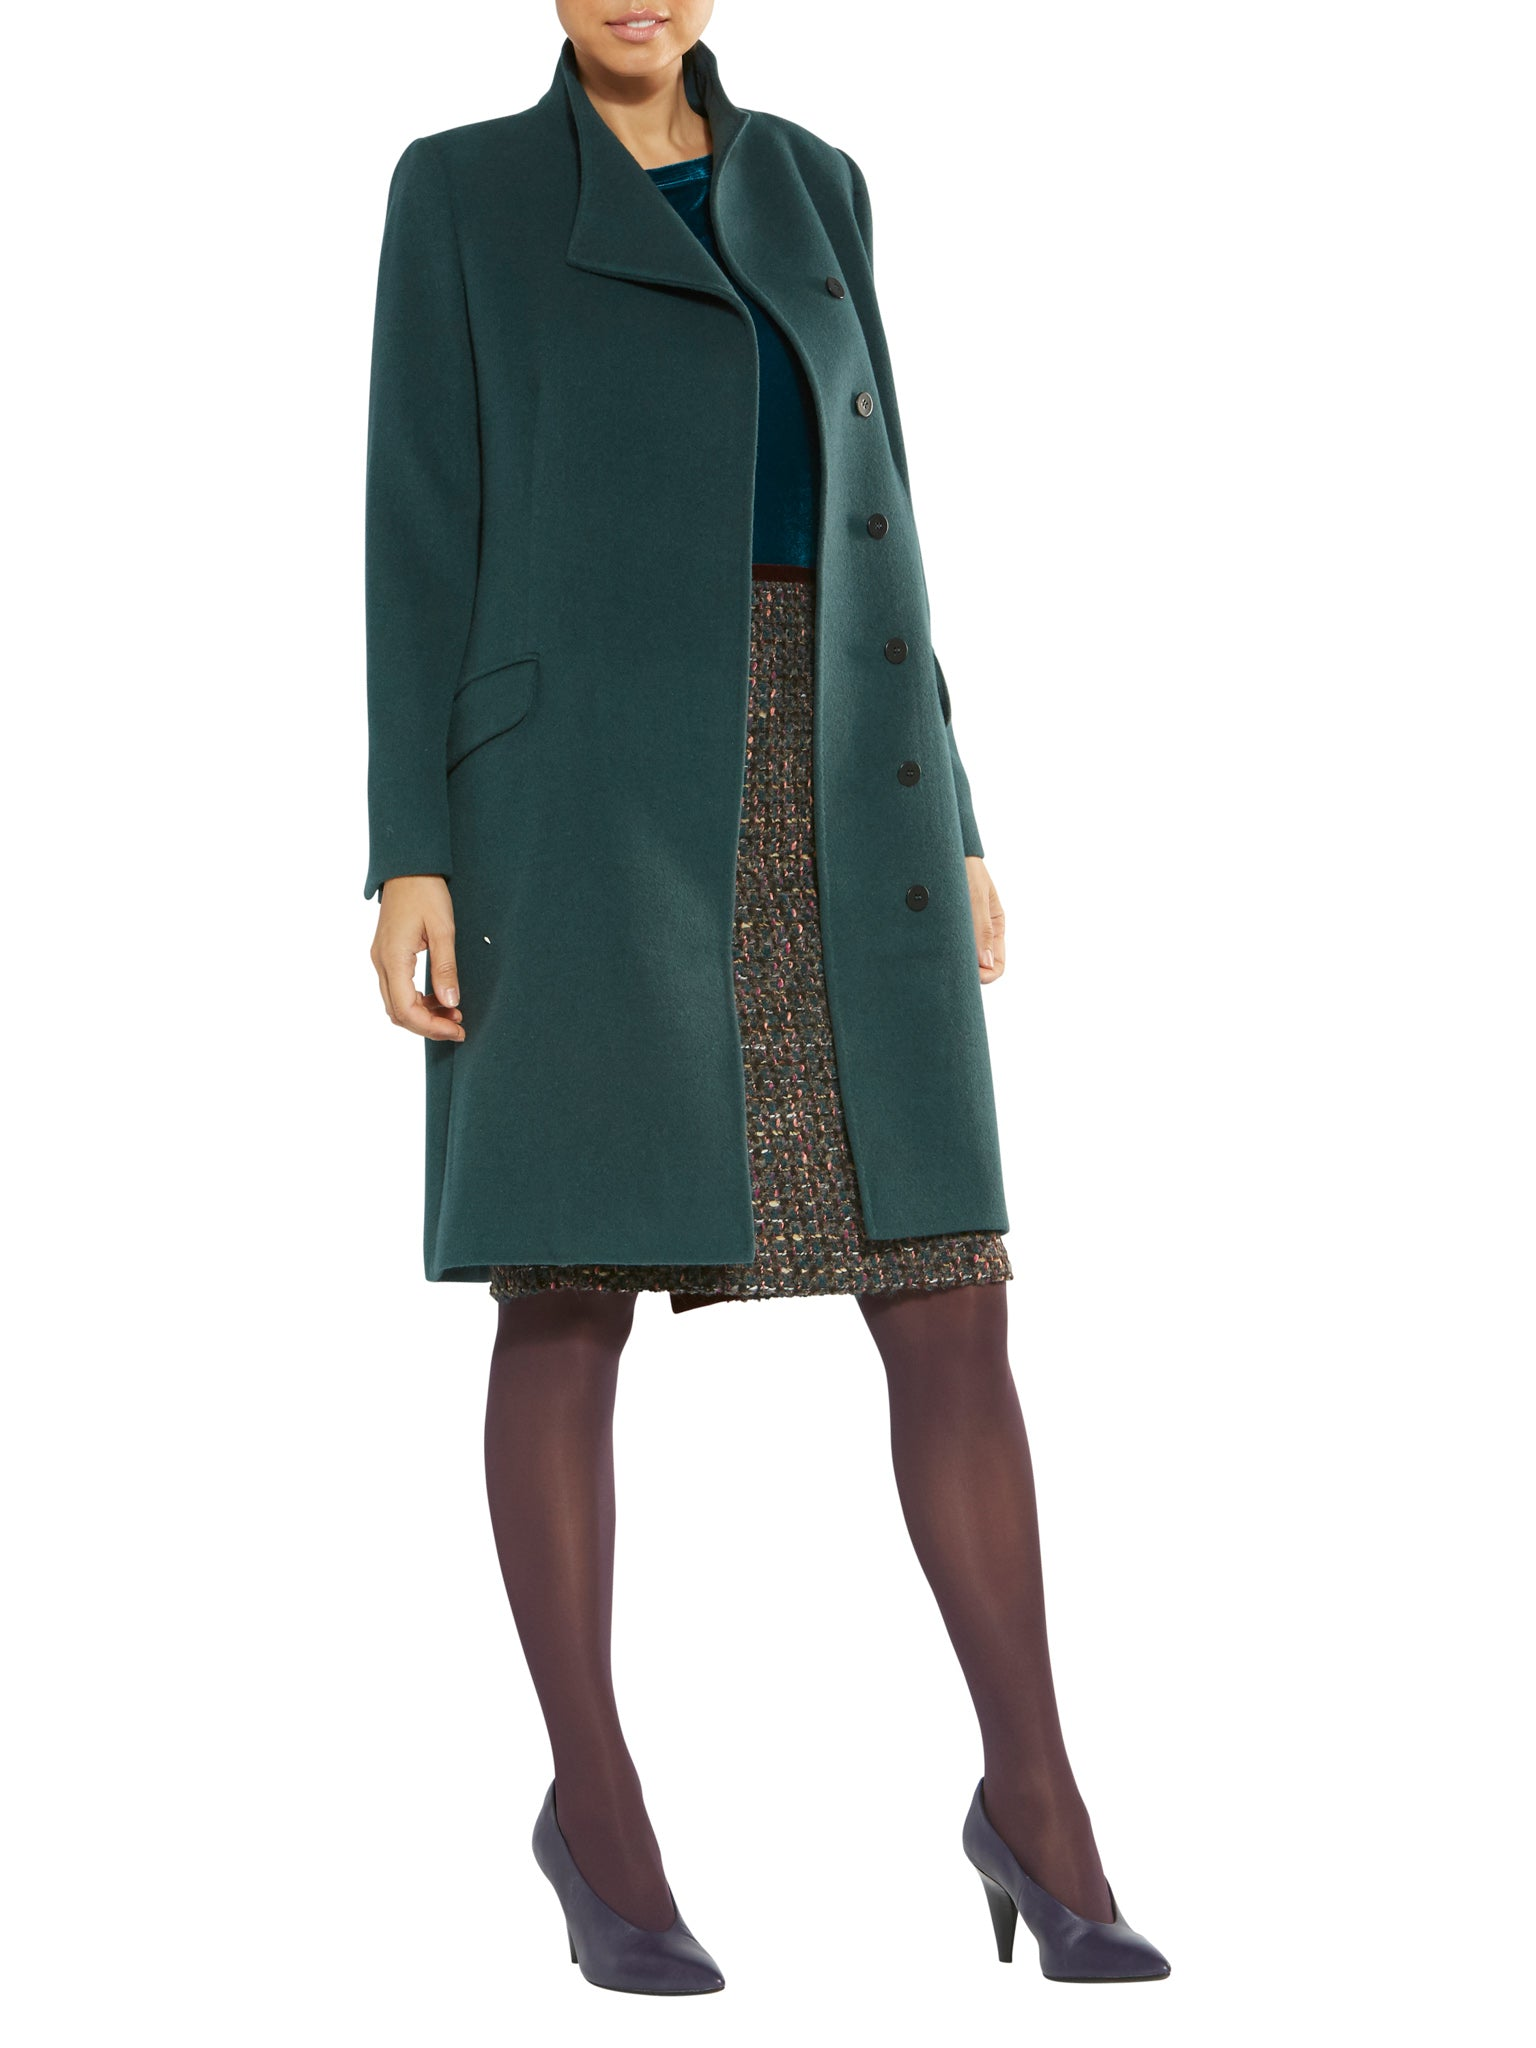 Linda Amazon Coat